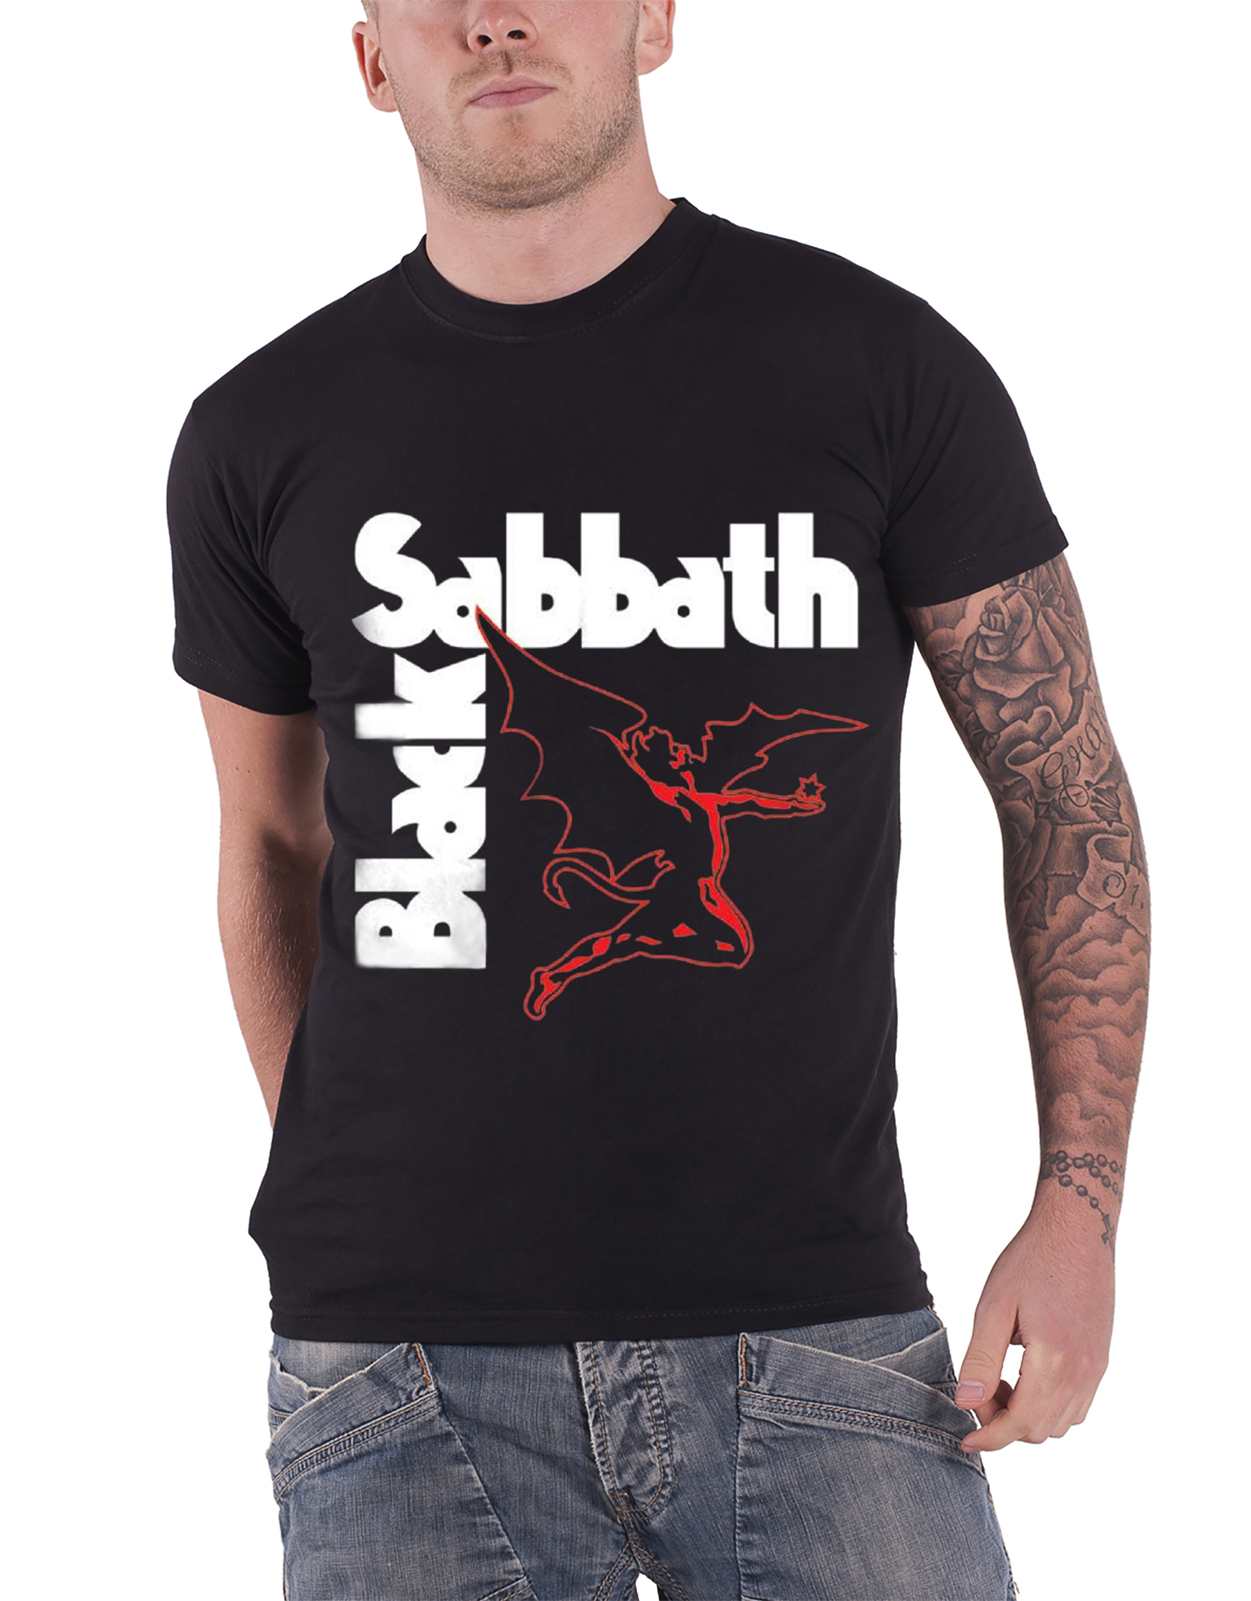 Black sabbath t shirt avengers - Black Sabbath T Shirt Us Tour 78 Band